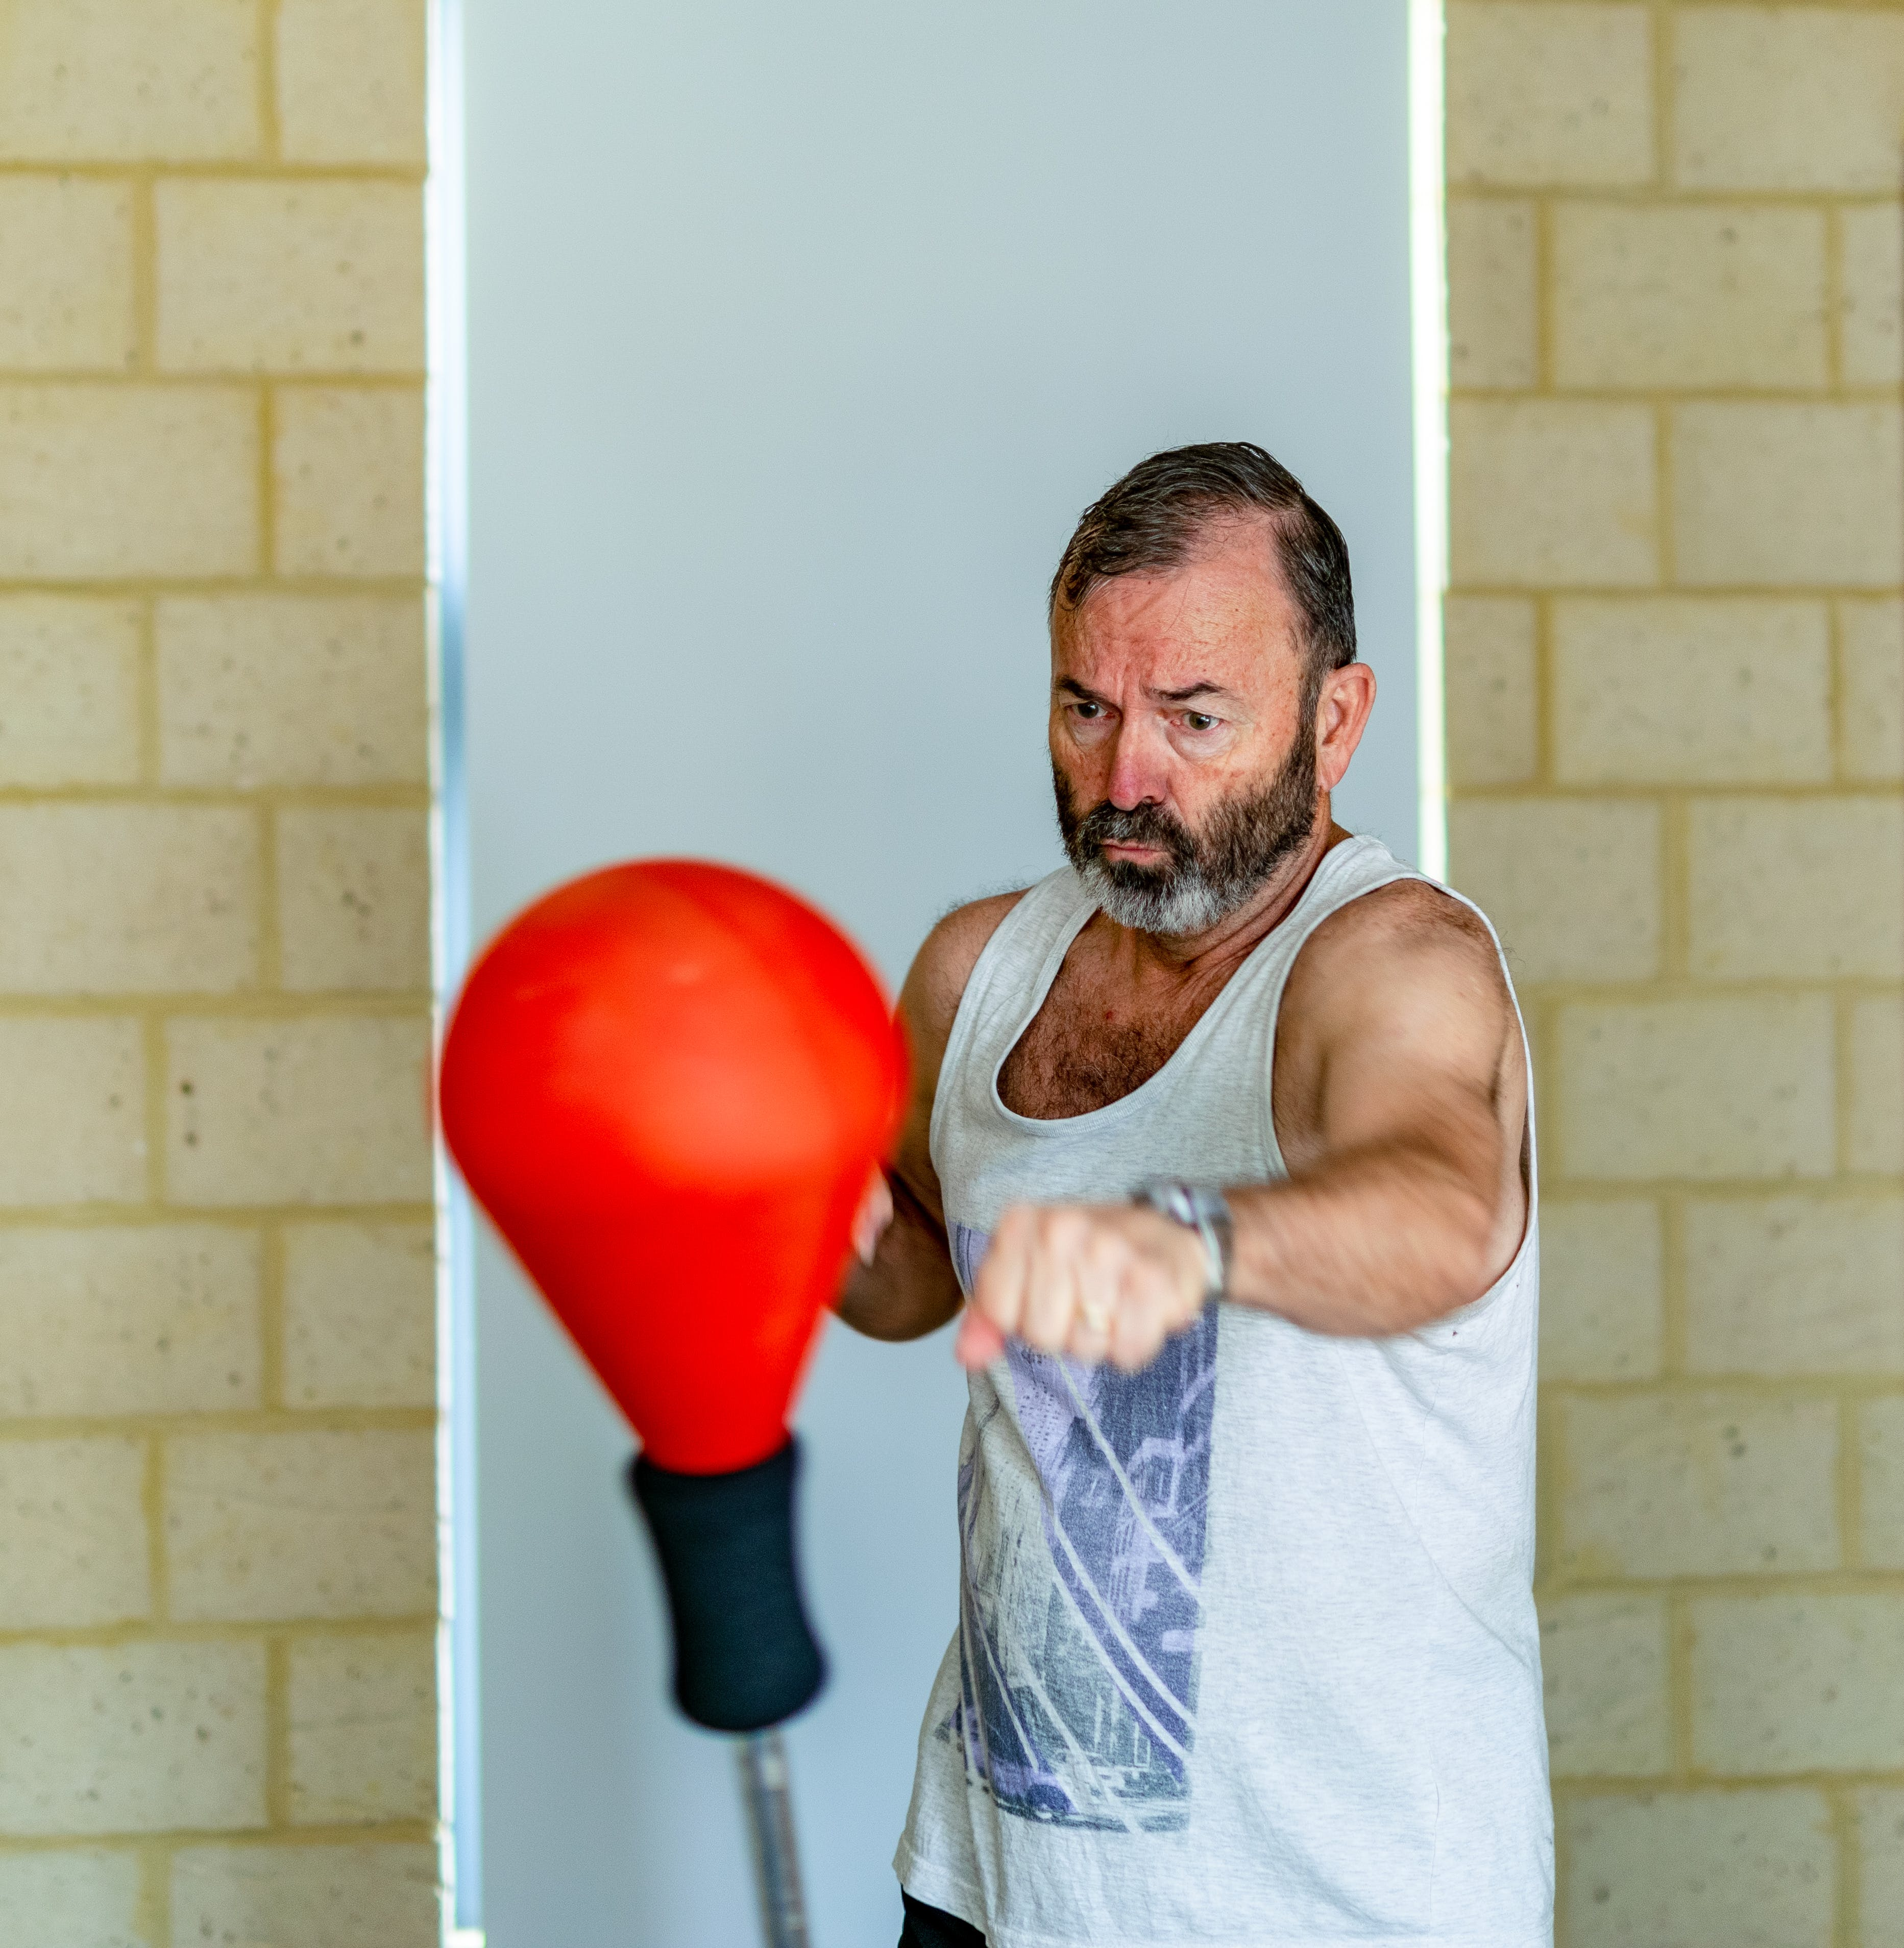 Free stock photo of boxing, concentration, focus, gym